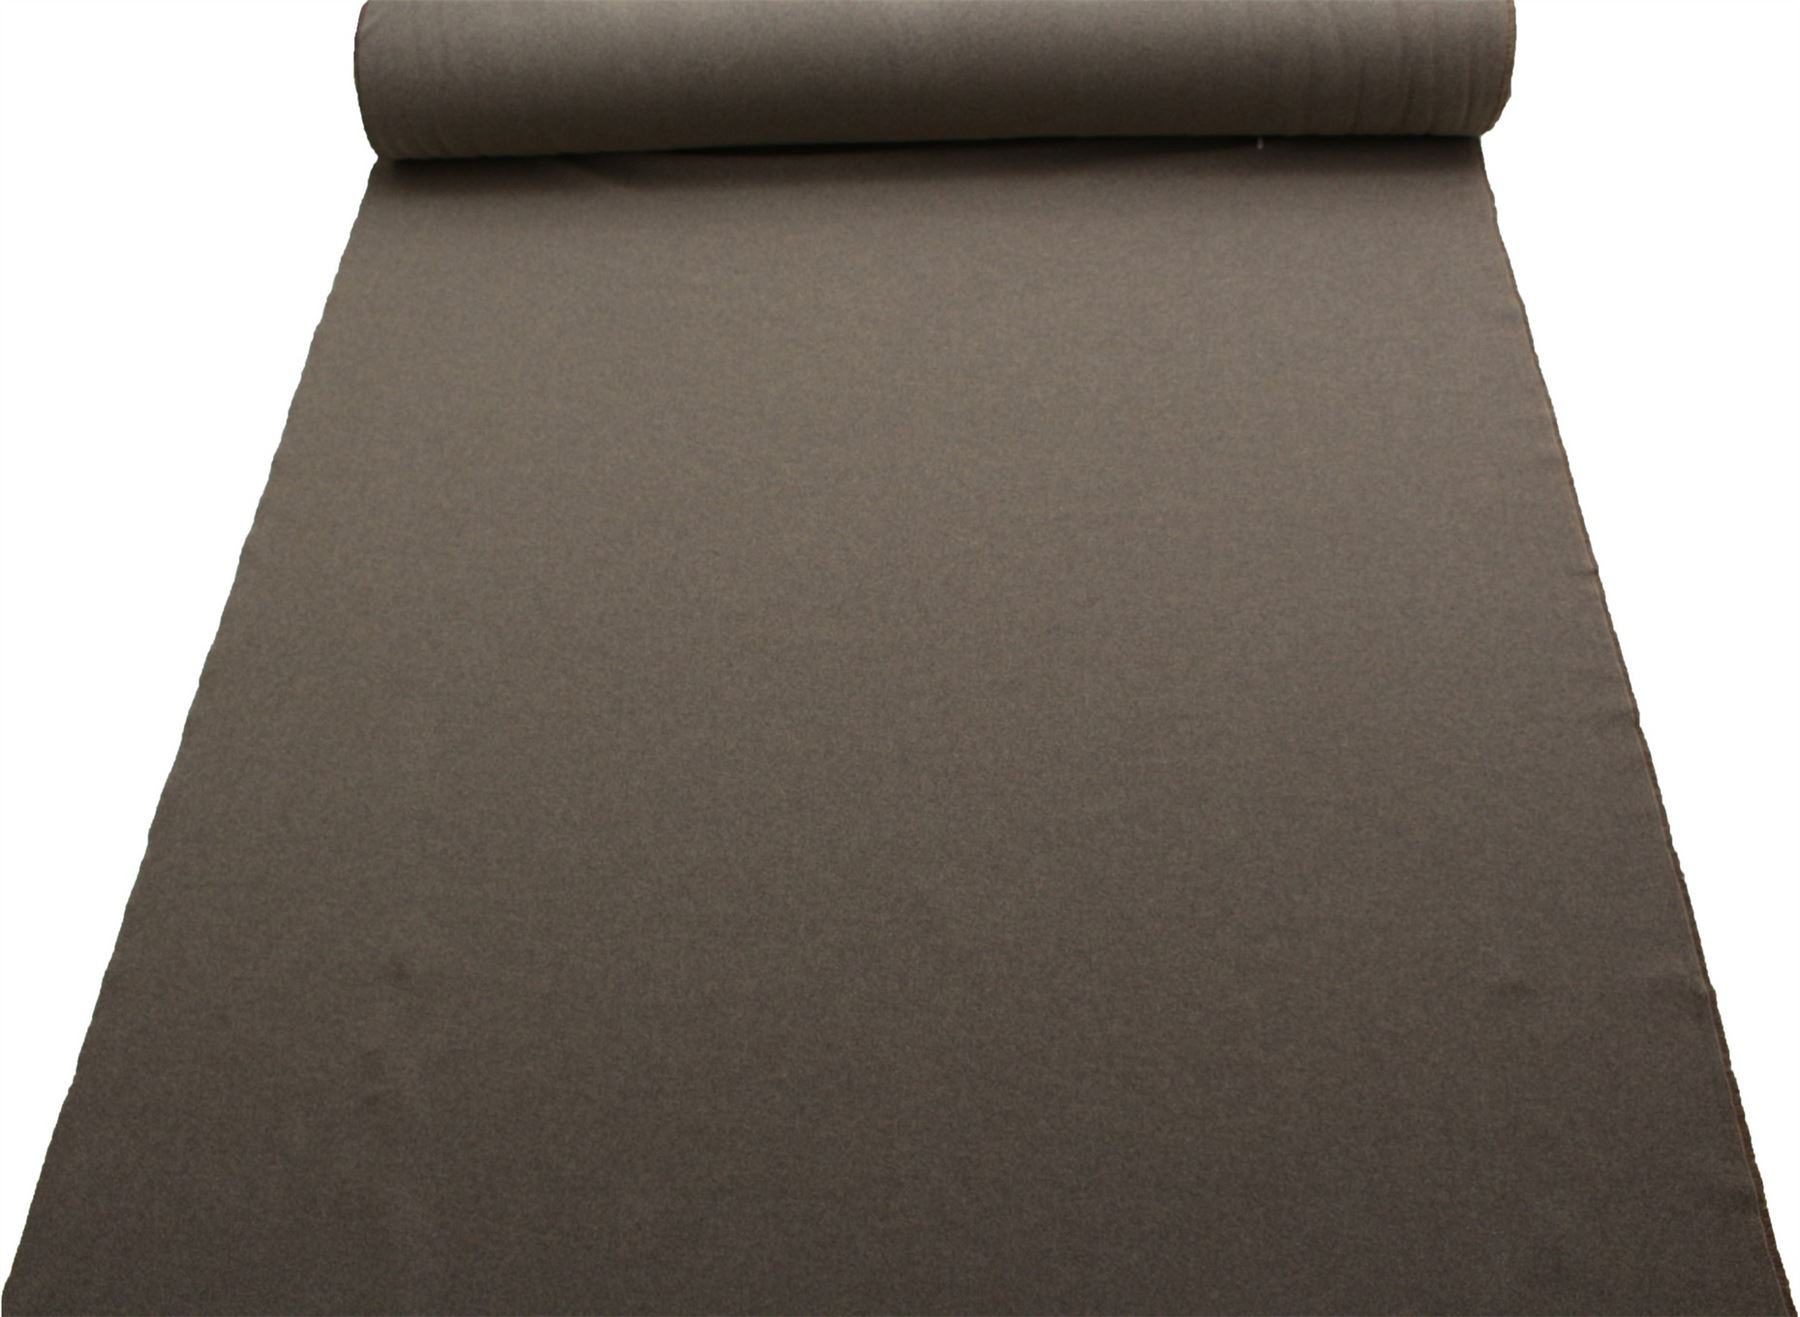 TRADITIONAL TWILL WEAVE SOFT PLAIN FURNISHING COTTON FAUX WOOL UPHOLSTERY FABRIC